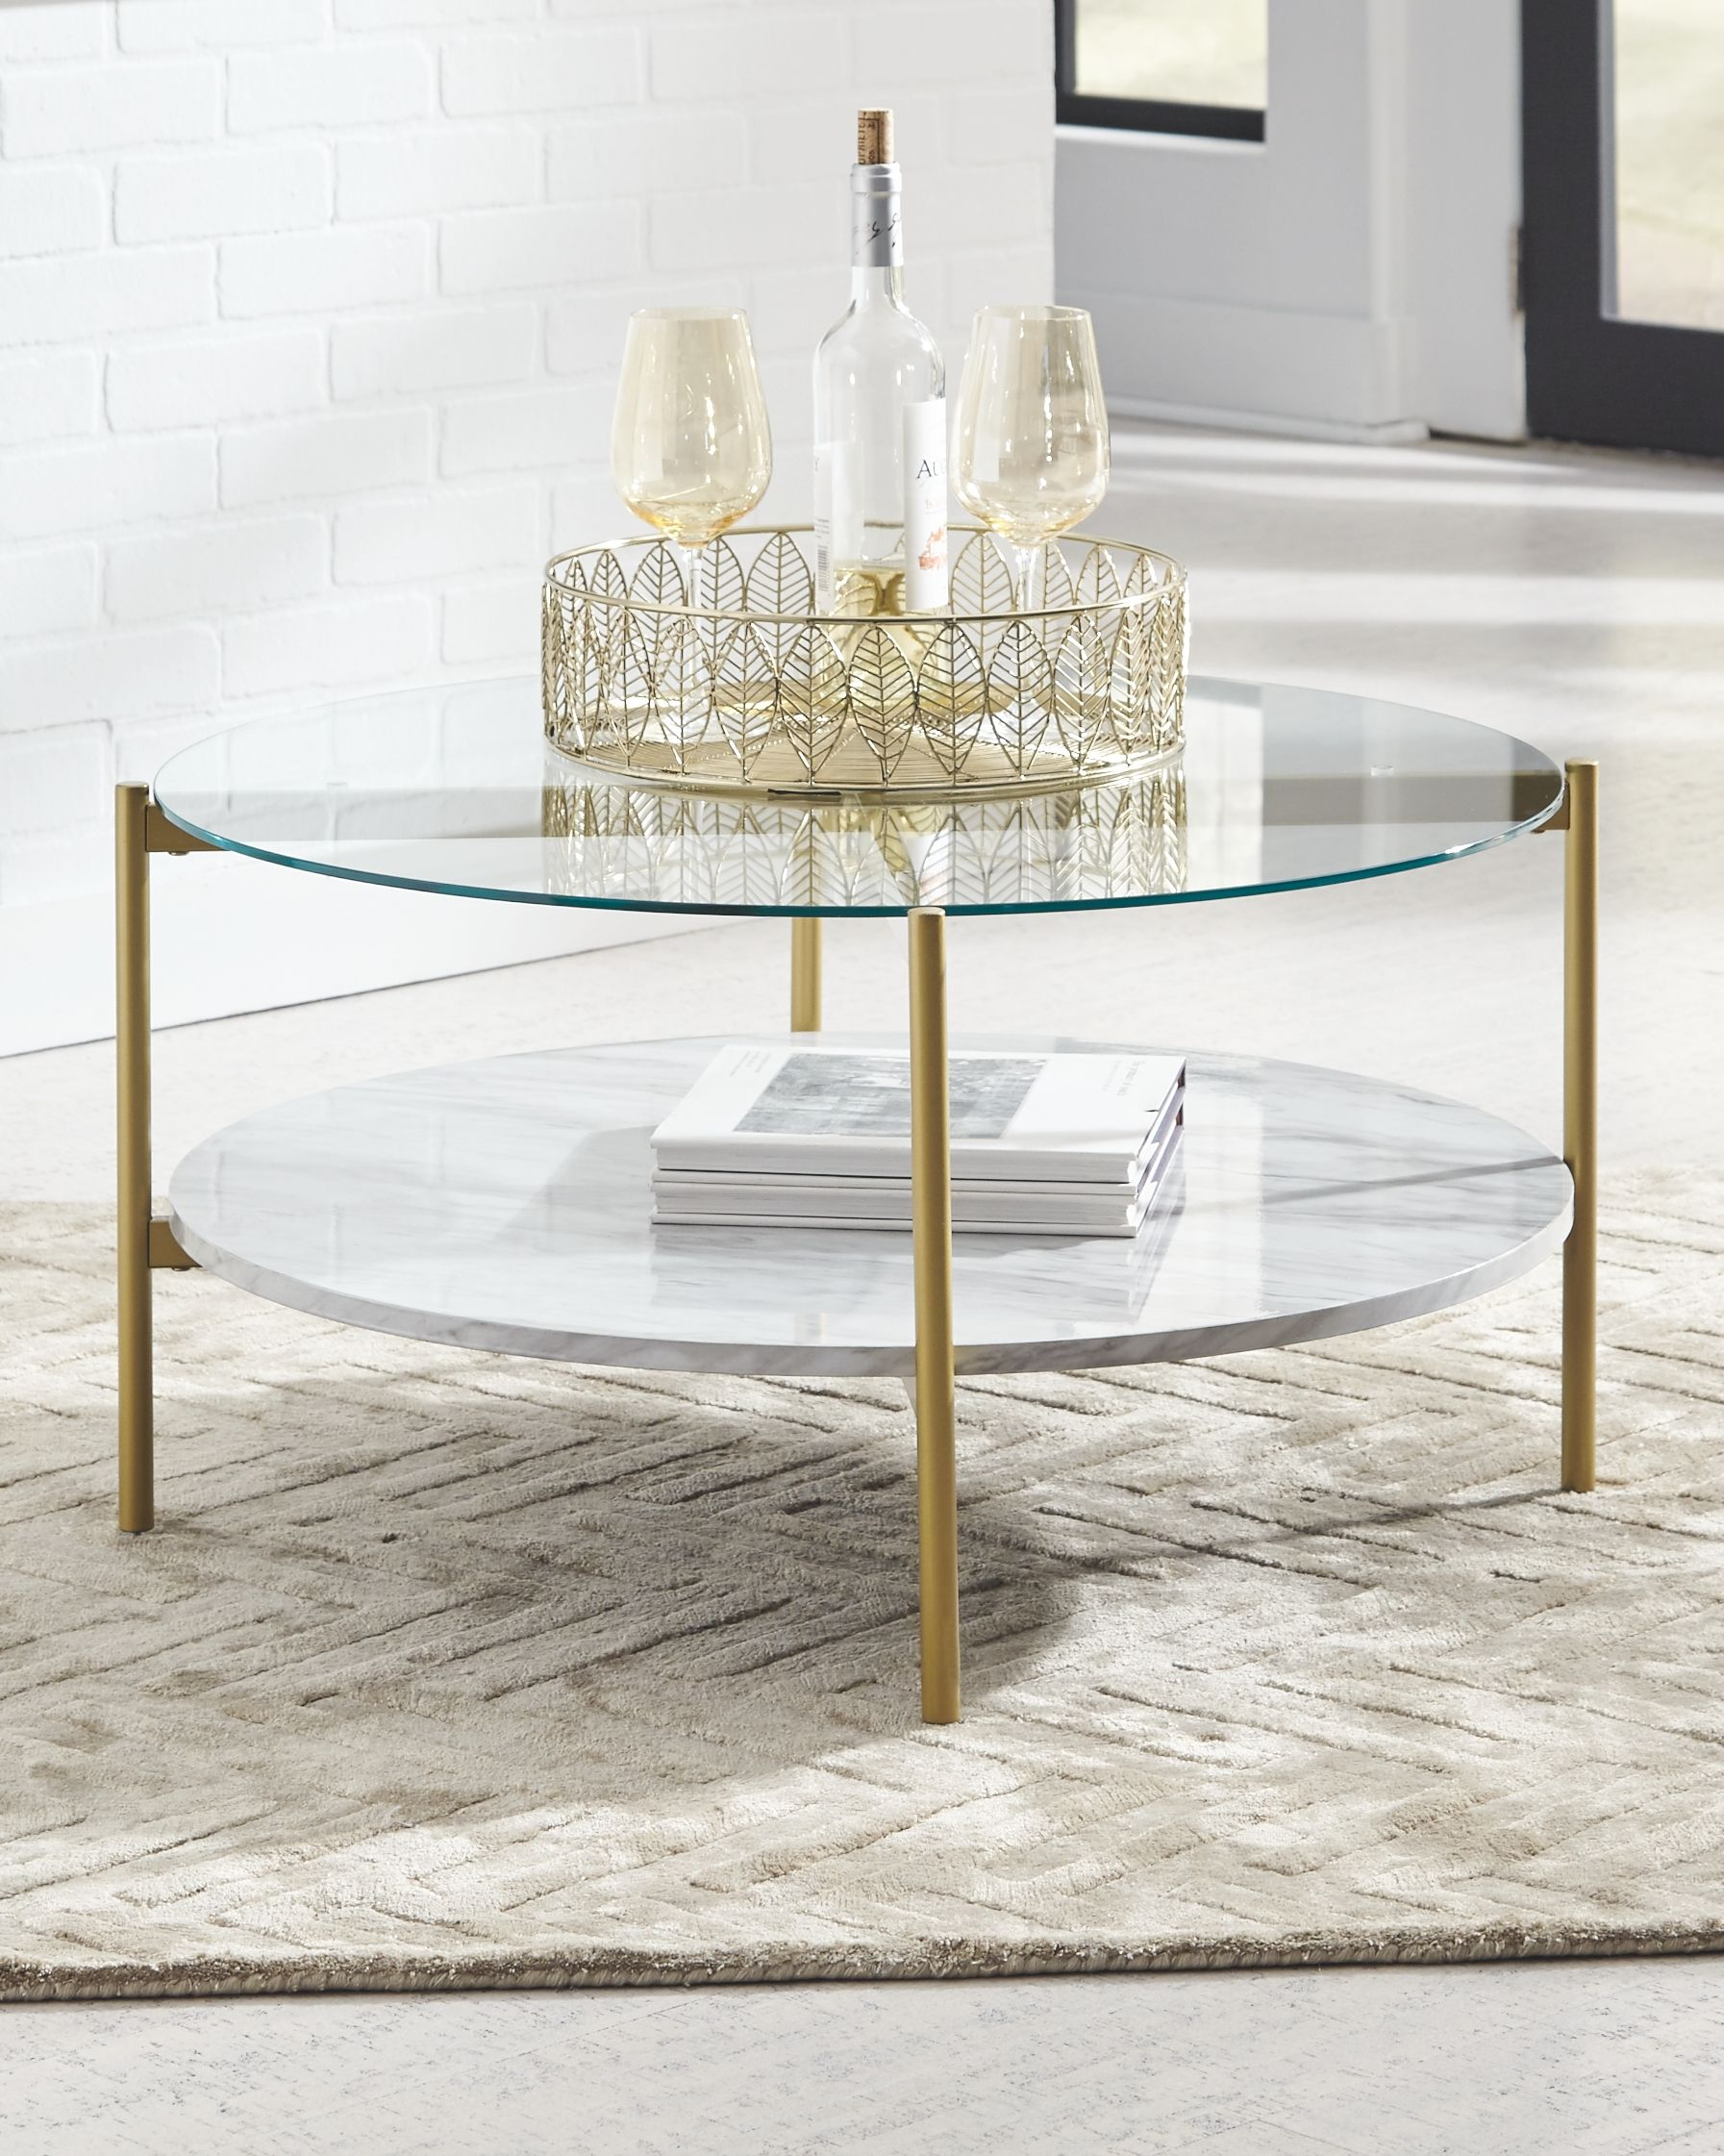 Pin By Lora Gomersall On Front Room In 2021 Gold Nesting Coffee Table Gold Coffee Table Round Gold Coffee Table [ 2242 x 1793 Pixel ]